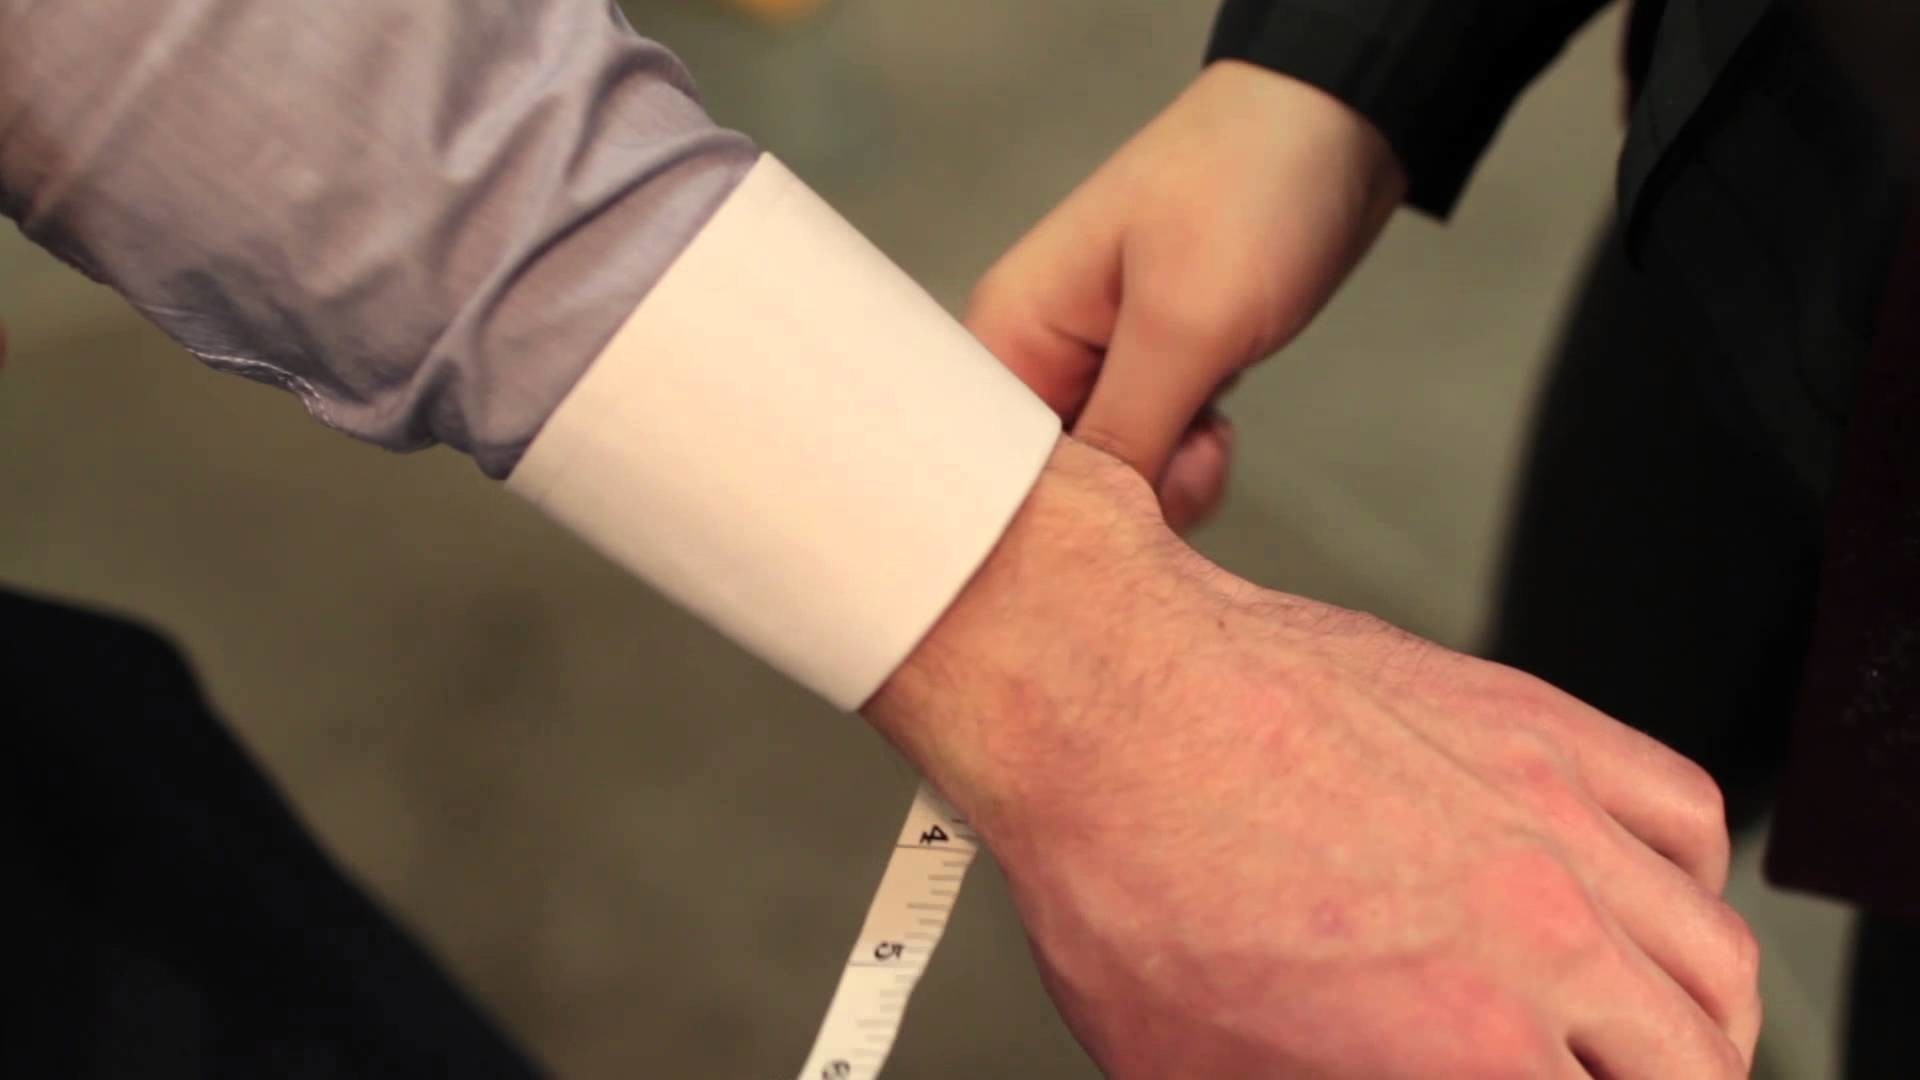 Eph Apparel - Suit Measurement Tutorial - Wrist